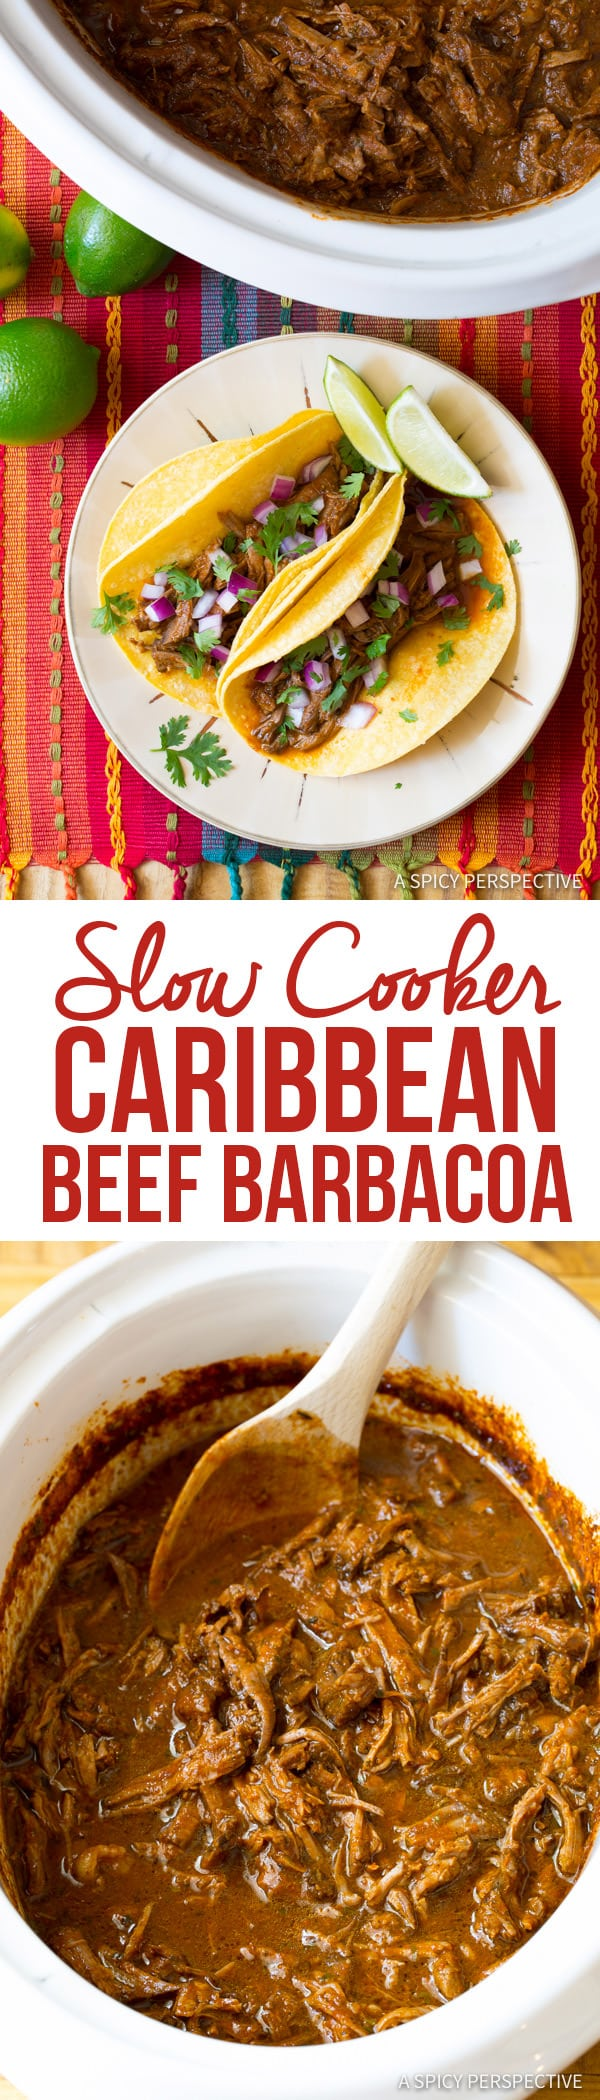 A Spicy Perspective Slow Cooker Barbacoa Recipe - A Spicy Perspective